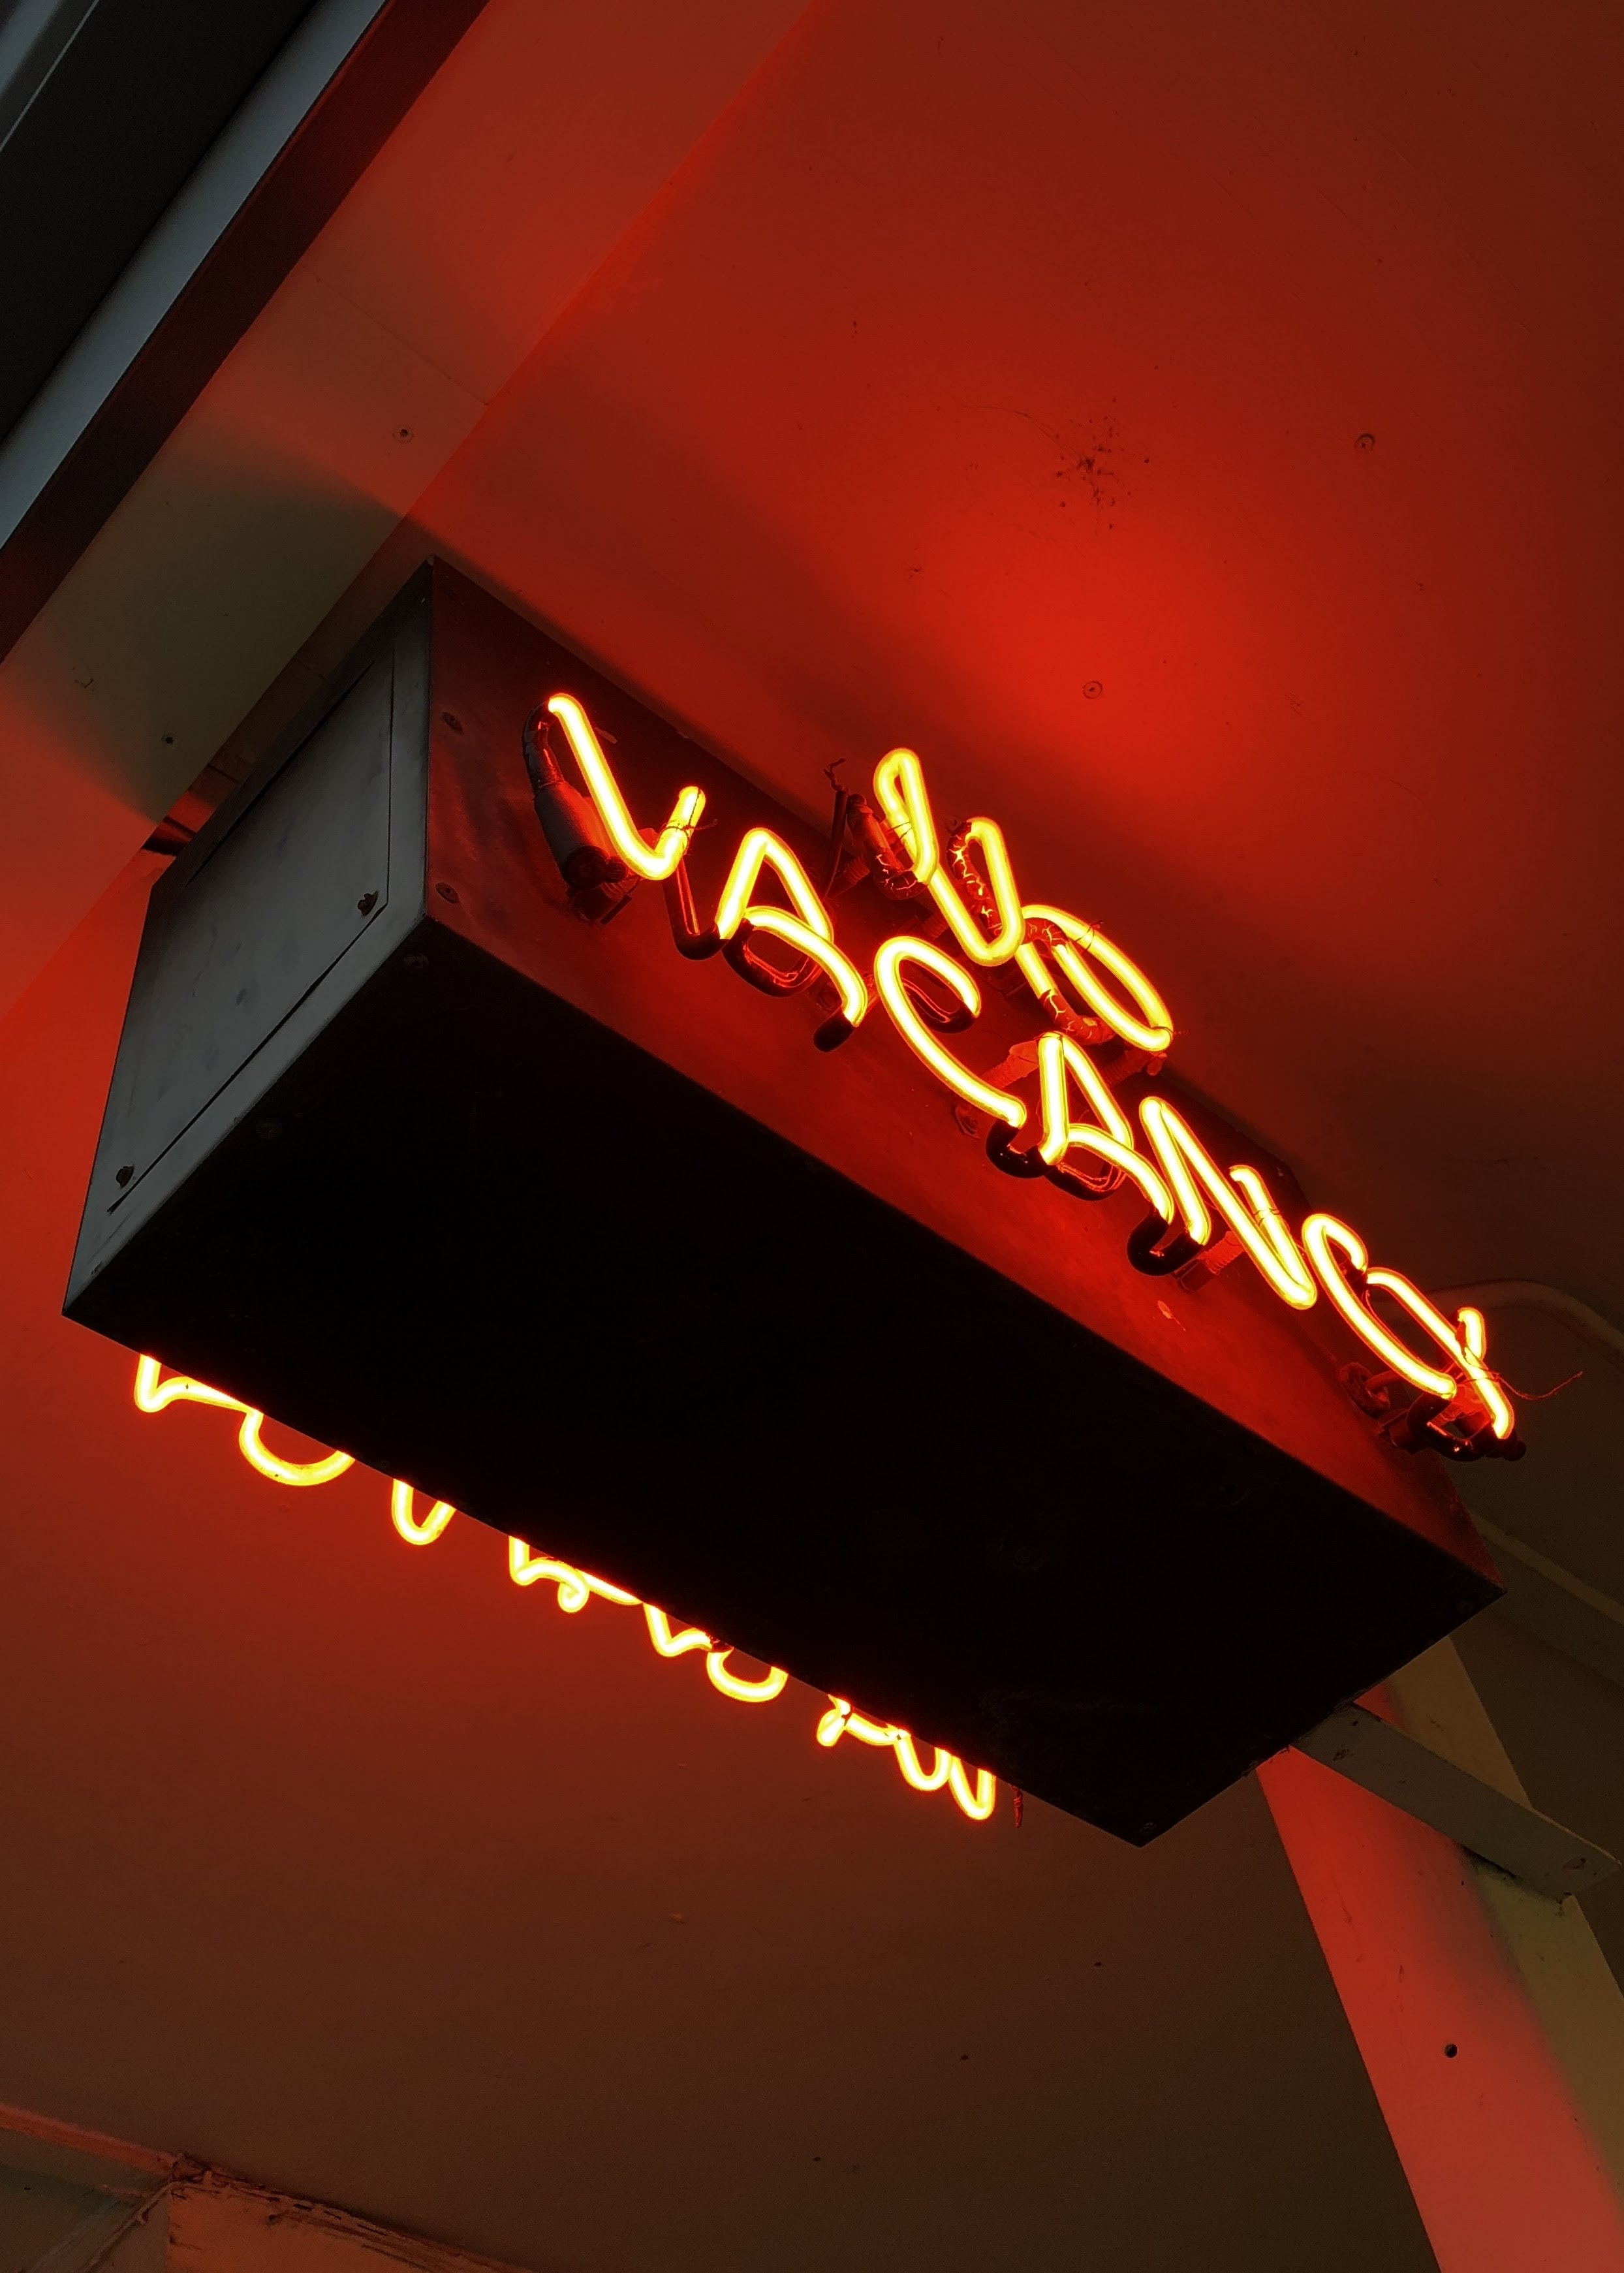 no vacancy neon light signage turned-on